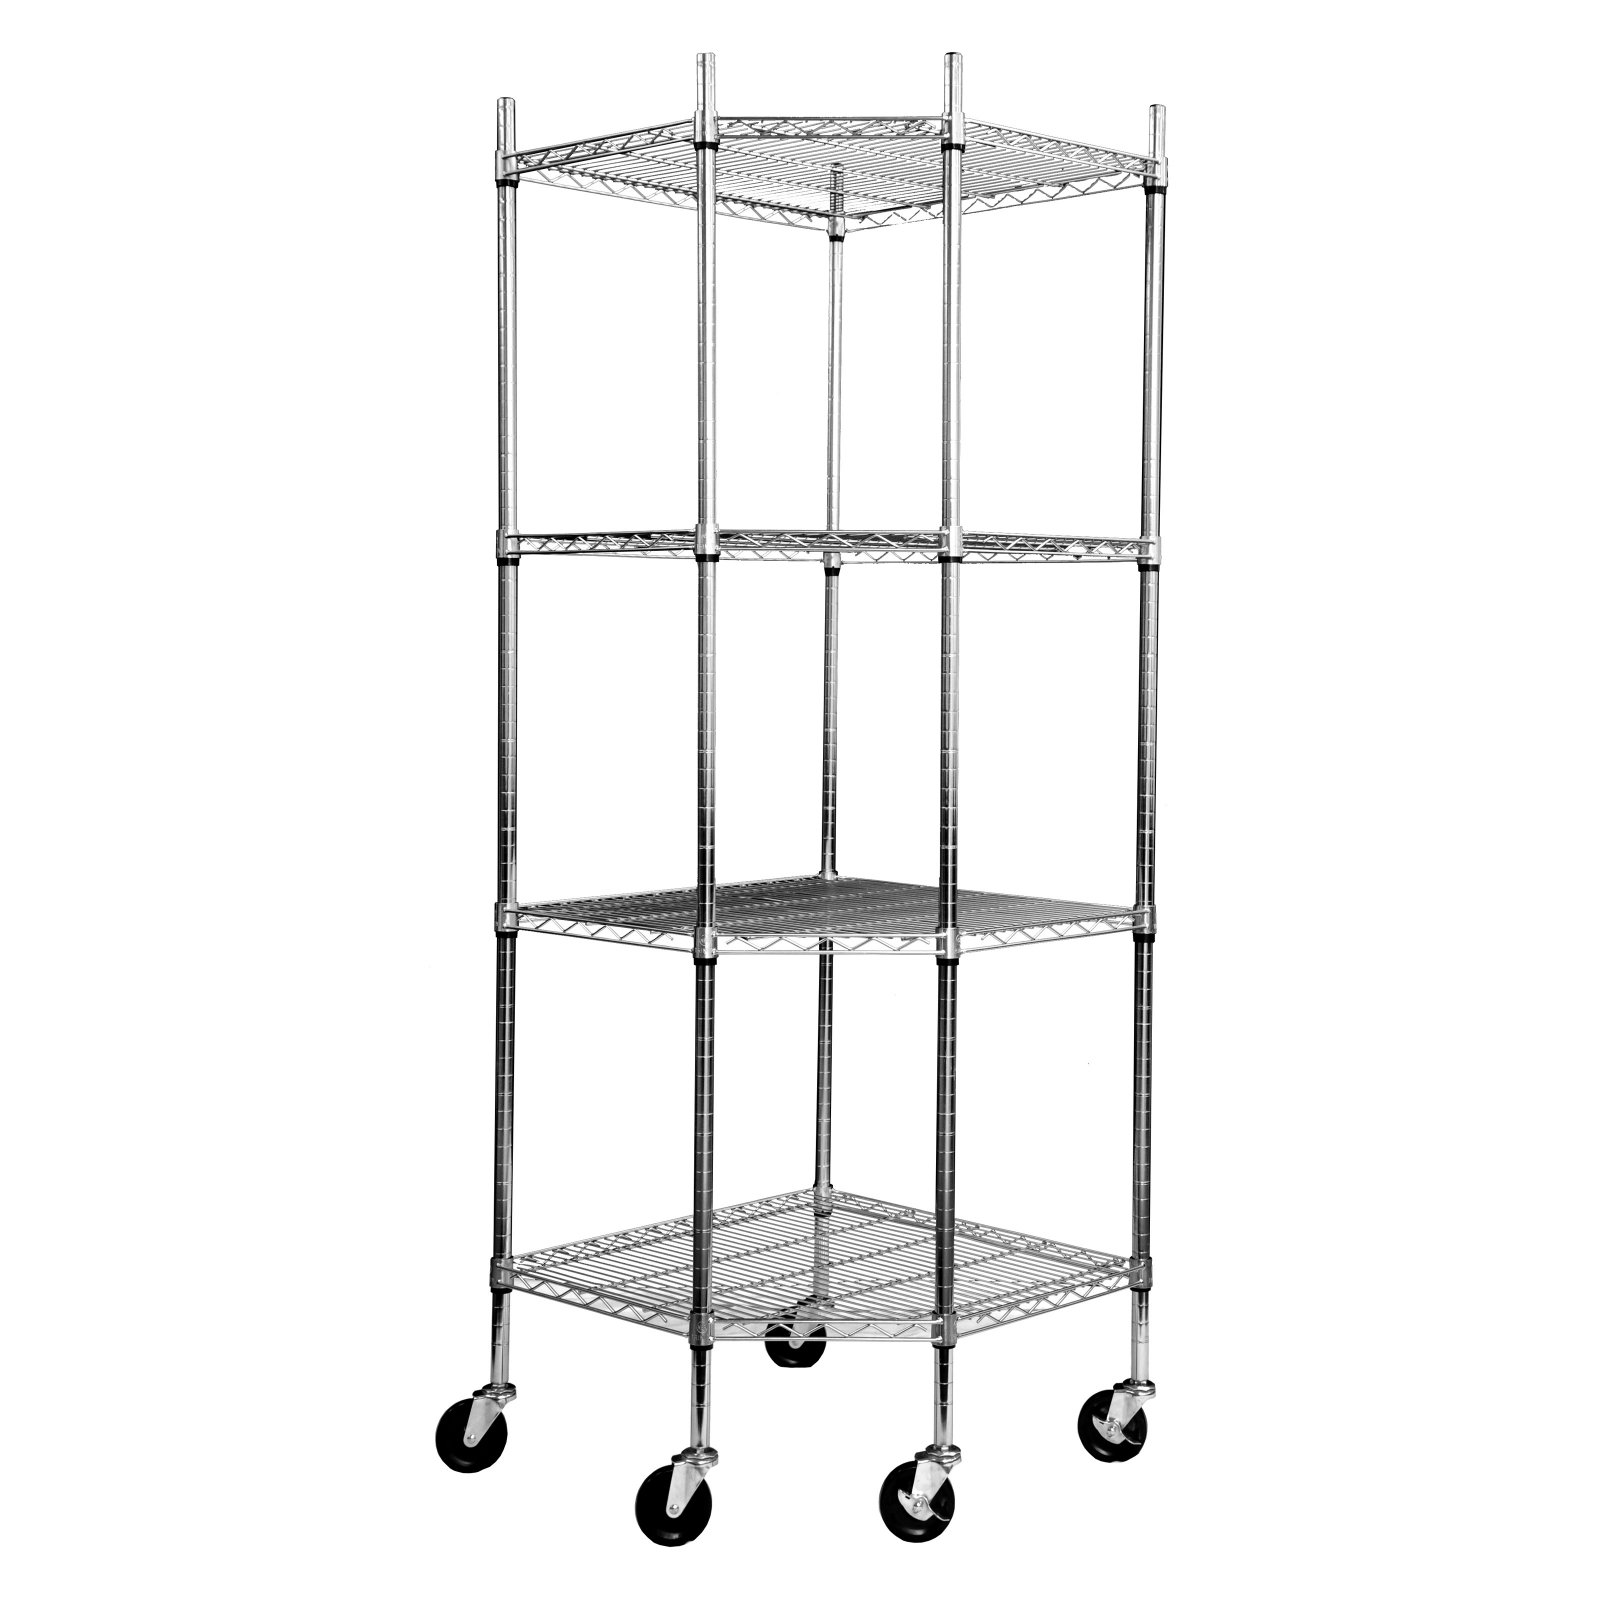 Ecostorage Chrome Wire Shelving Tier Wheels 6 1 Rack Trinity